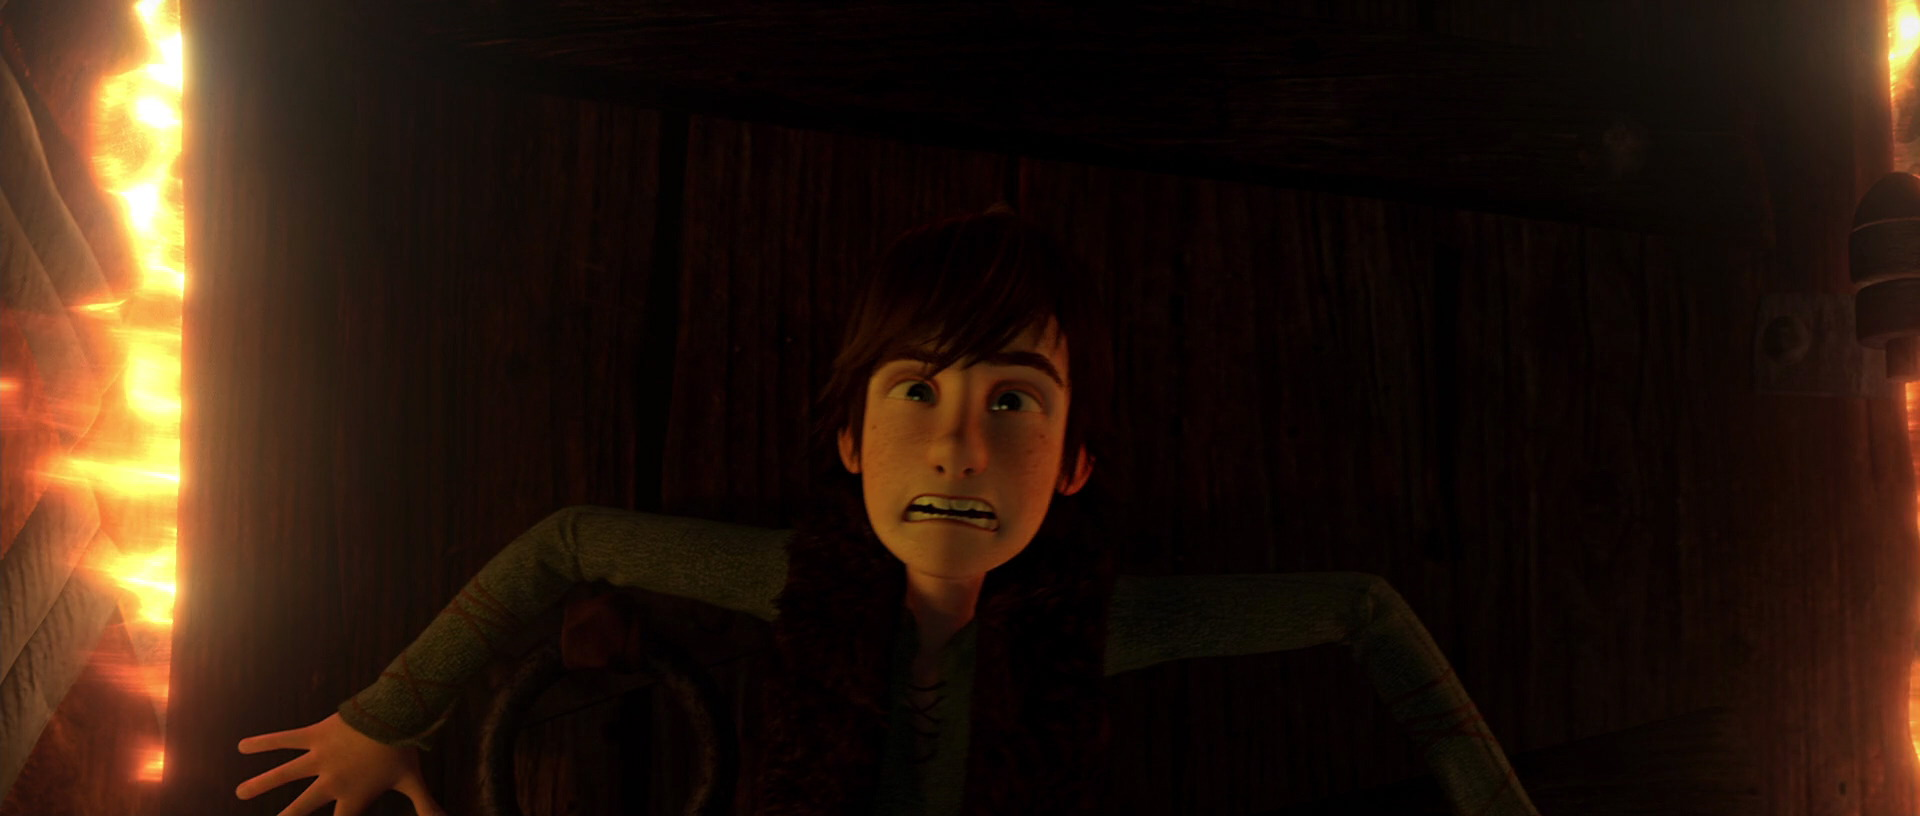 Hiccup/Gallery/Films